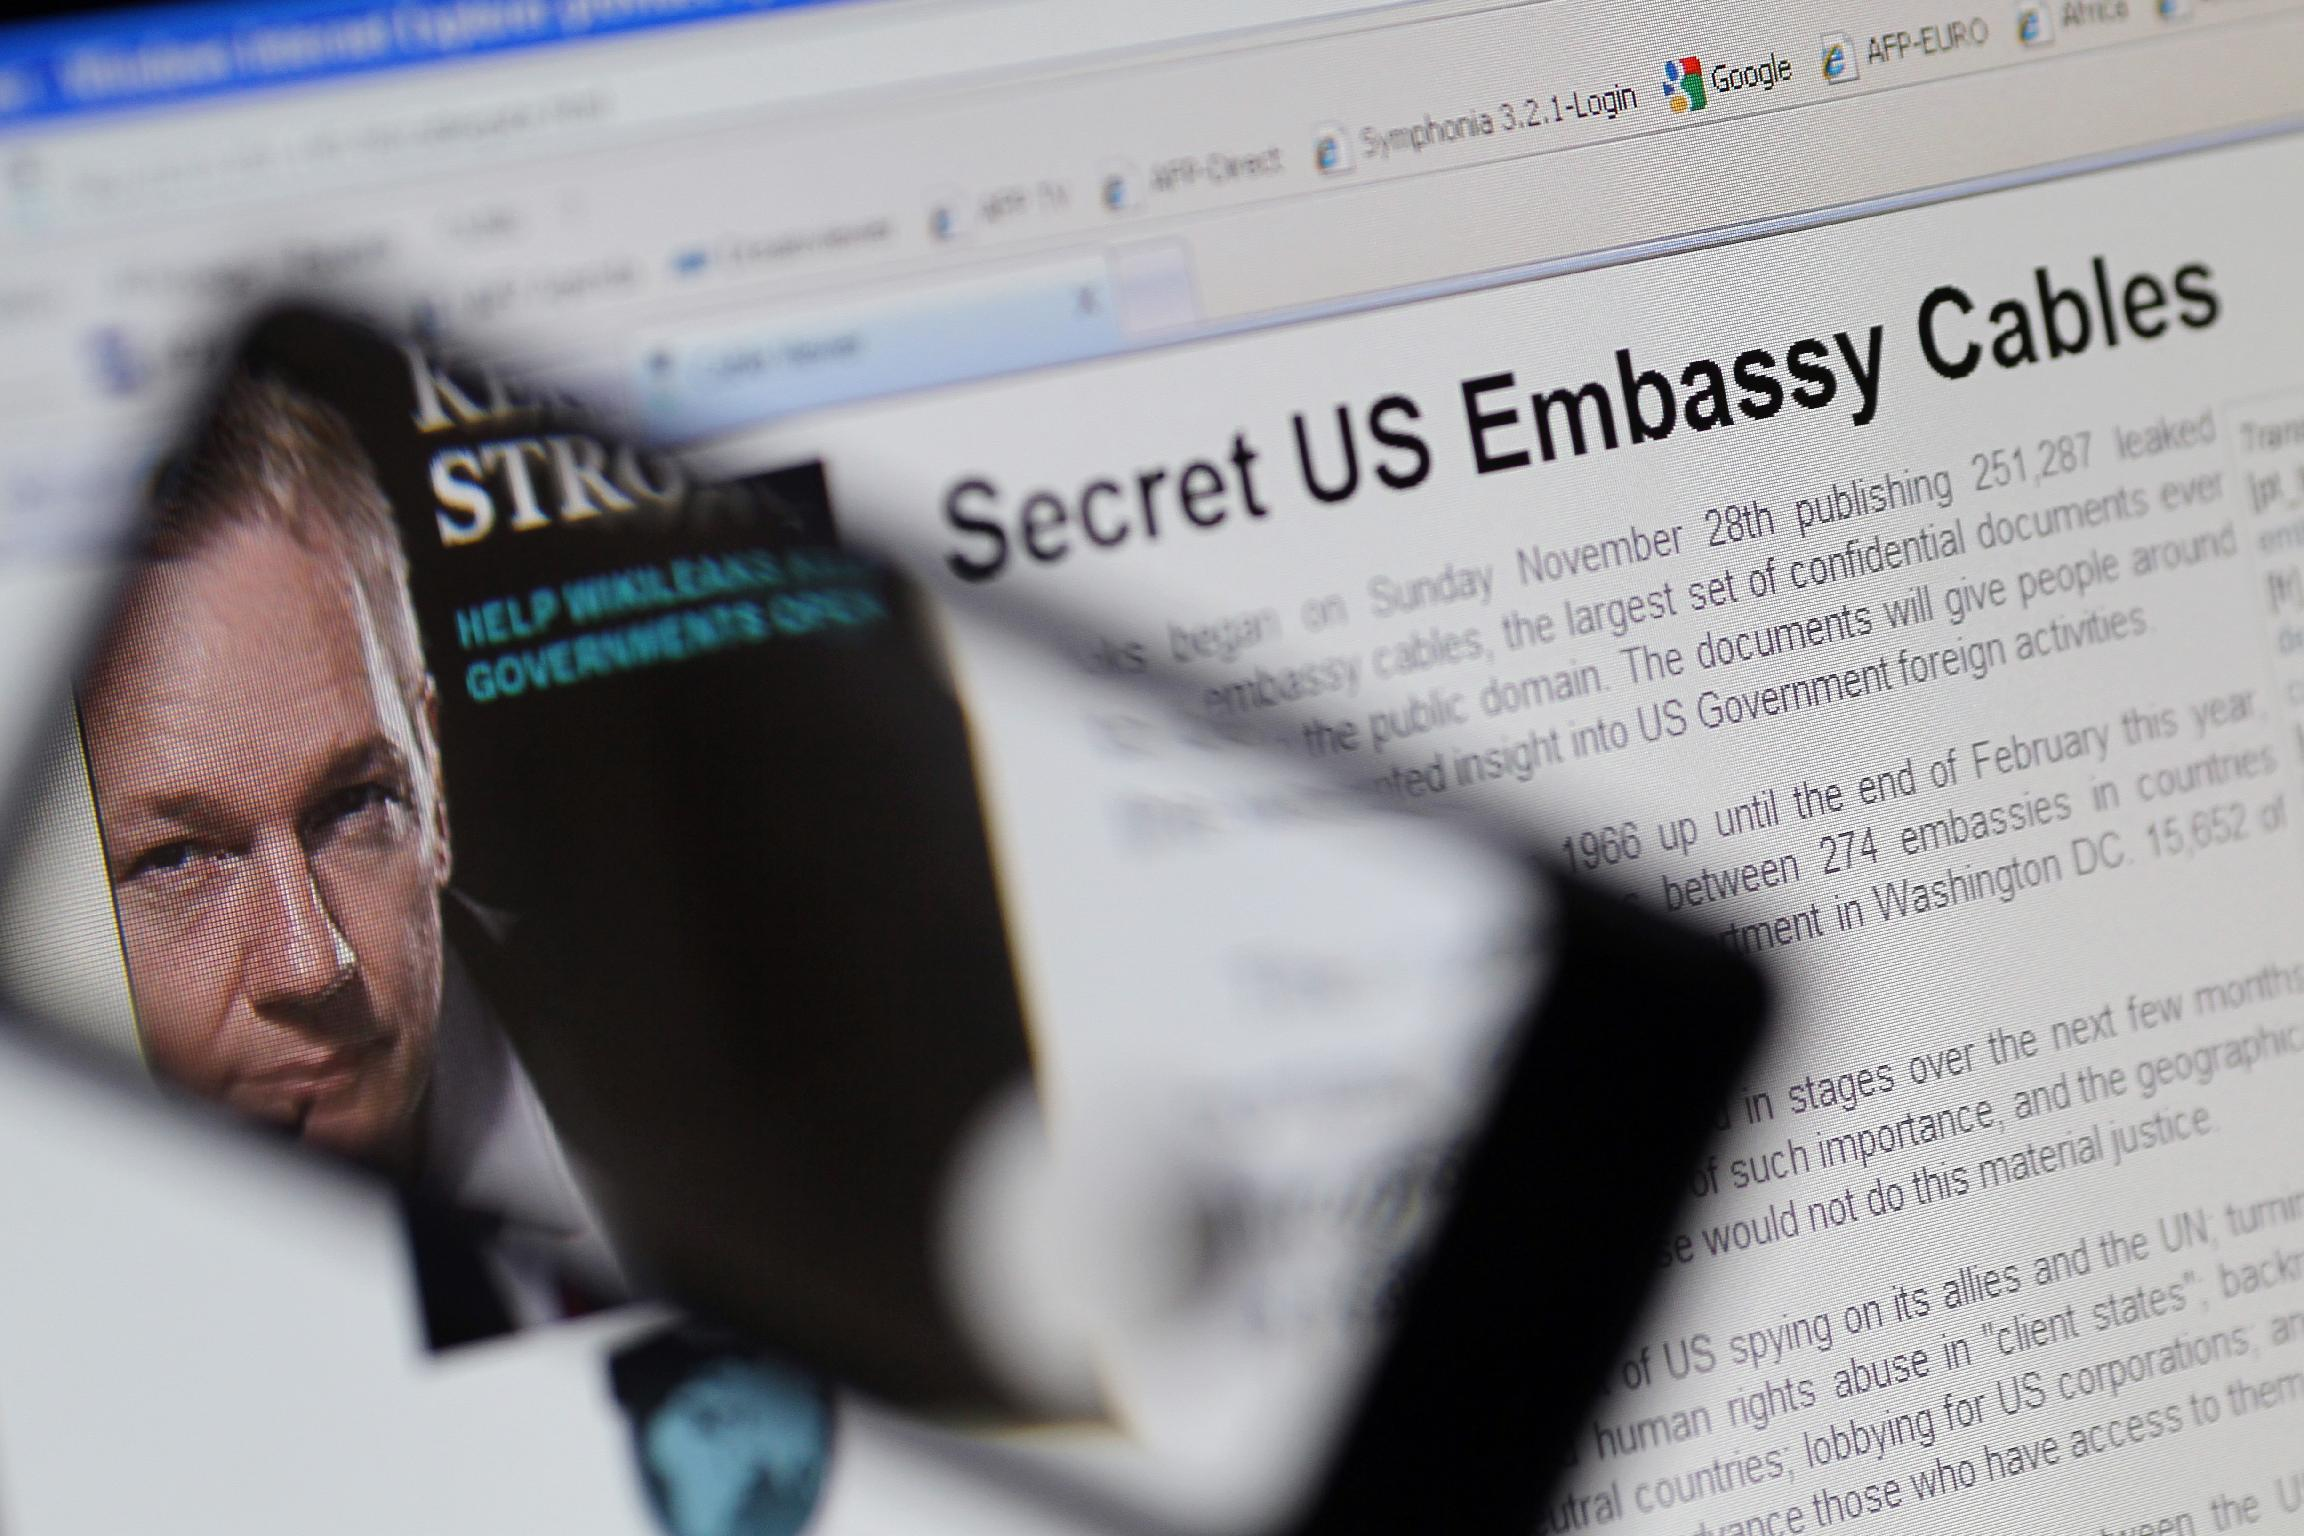 WikiLeaks accuses Google of handing over emails to US